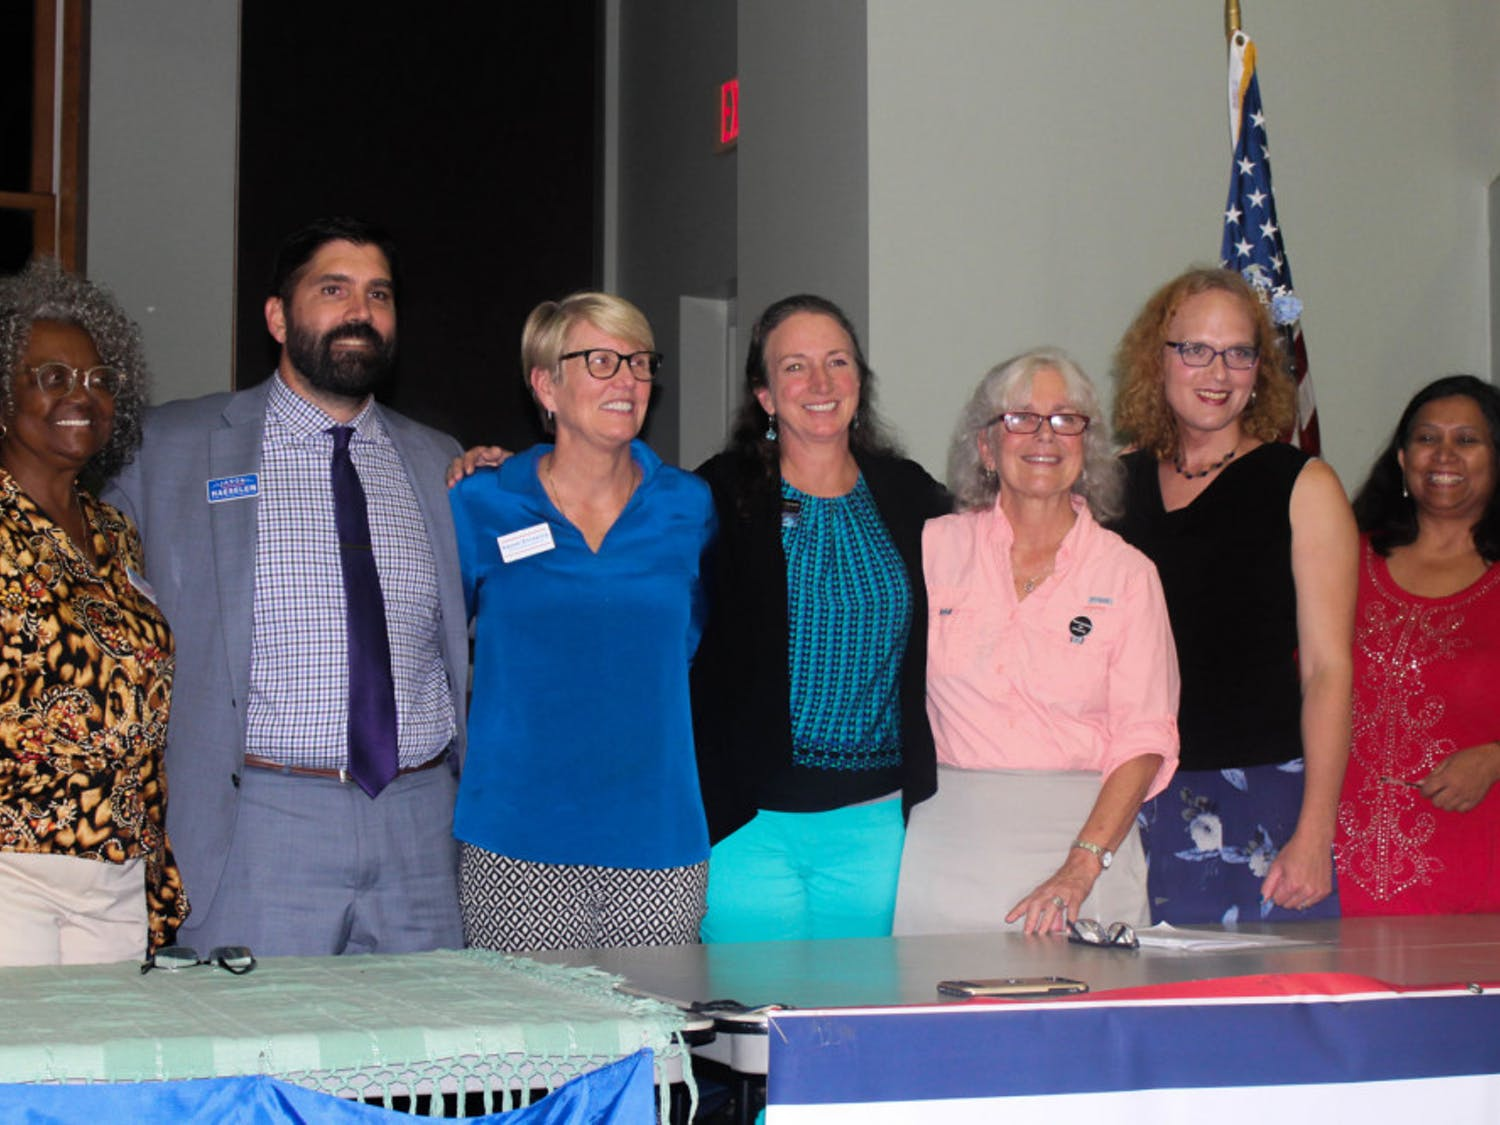 Five candidates, who will appear on the Nov. 6 general election ballot, answered feminist-centered questions at a forum Tuesday. The candidates from left to right are: Yvonne Hayes Hinson, Jason Haeseler, Kayser Enneking, Merrillee Malwitz-Jipson and Marihelen Wheeler.